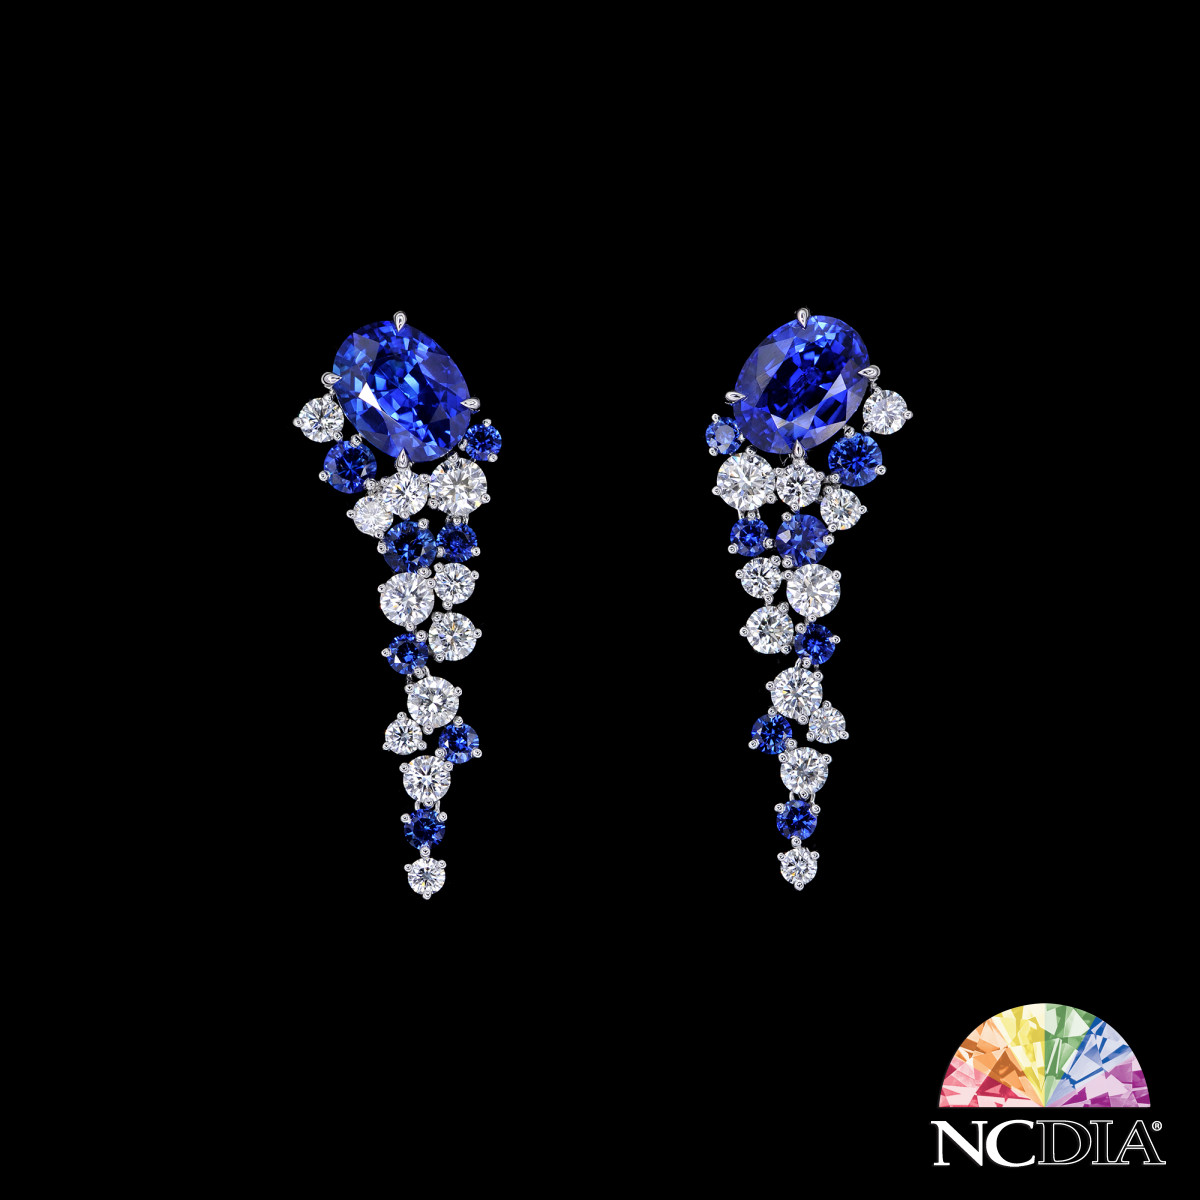 Over 3 cts ea Royal Blue Sri Lankan Sapphire Diamond Earrings, GRS certs available for main stones